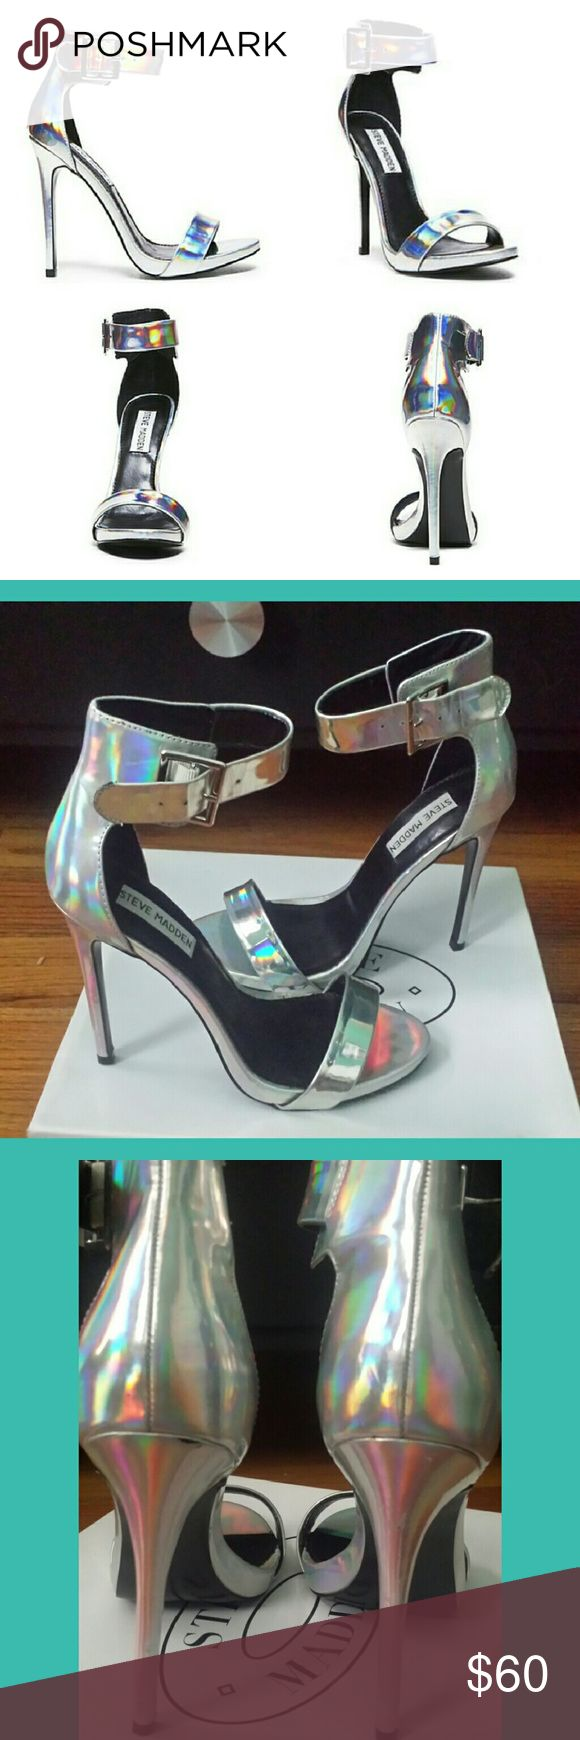 """Steve Madden silver holographic heels Steve Madden silver holographic heels  Heel hight: 4"""" Comes with original box Worn once Great used condition Steve Madden Shoes Heels"""